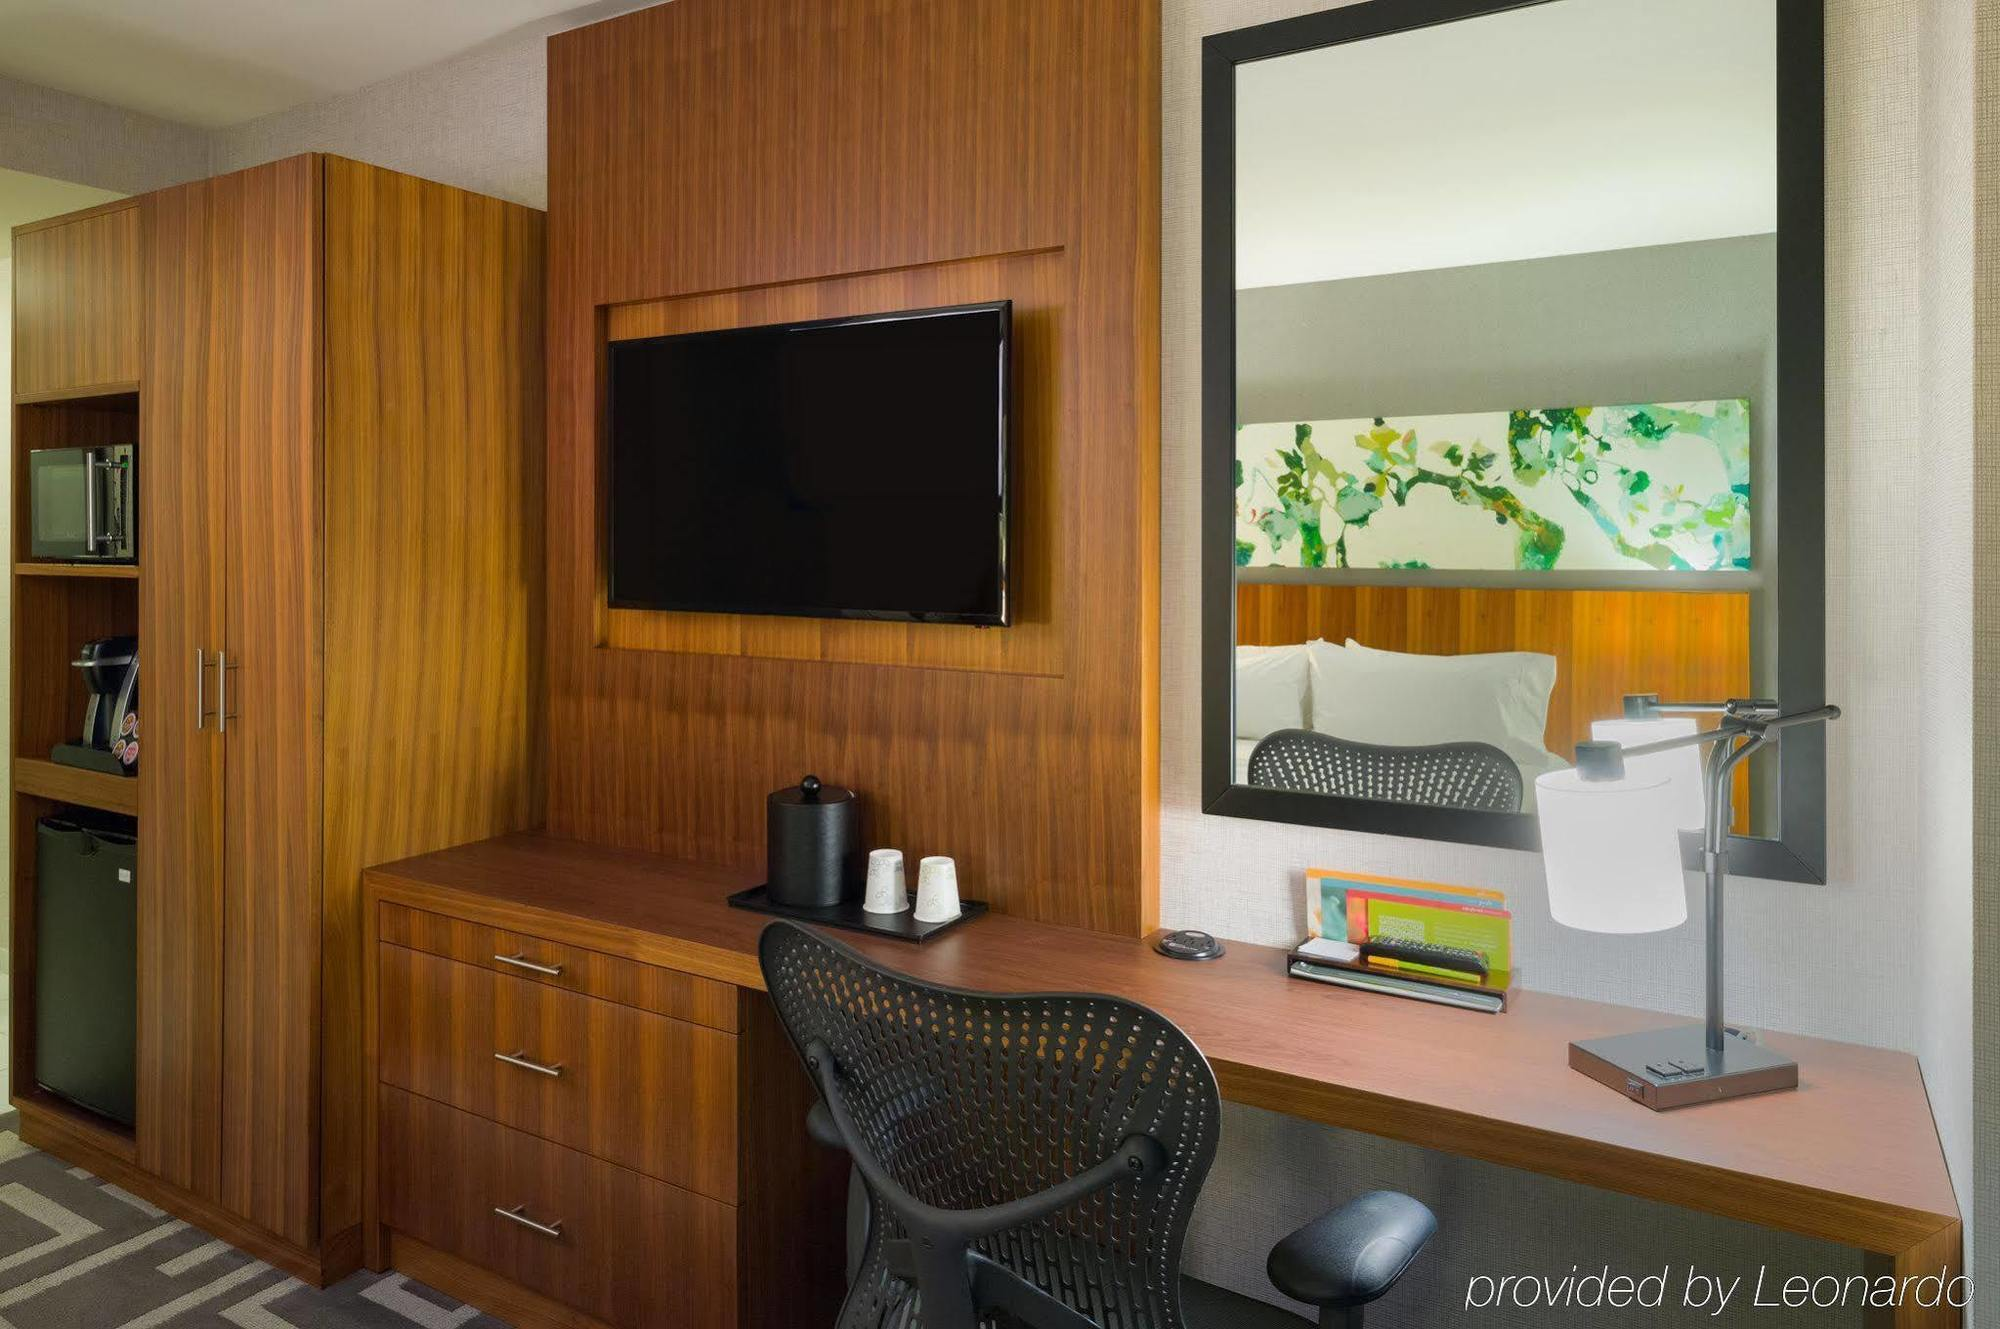 photos details - Hilton Garden Inn Central Park South